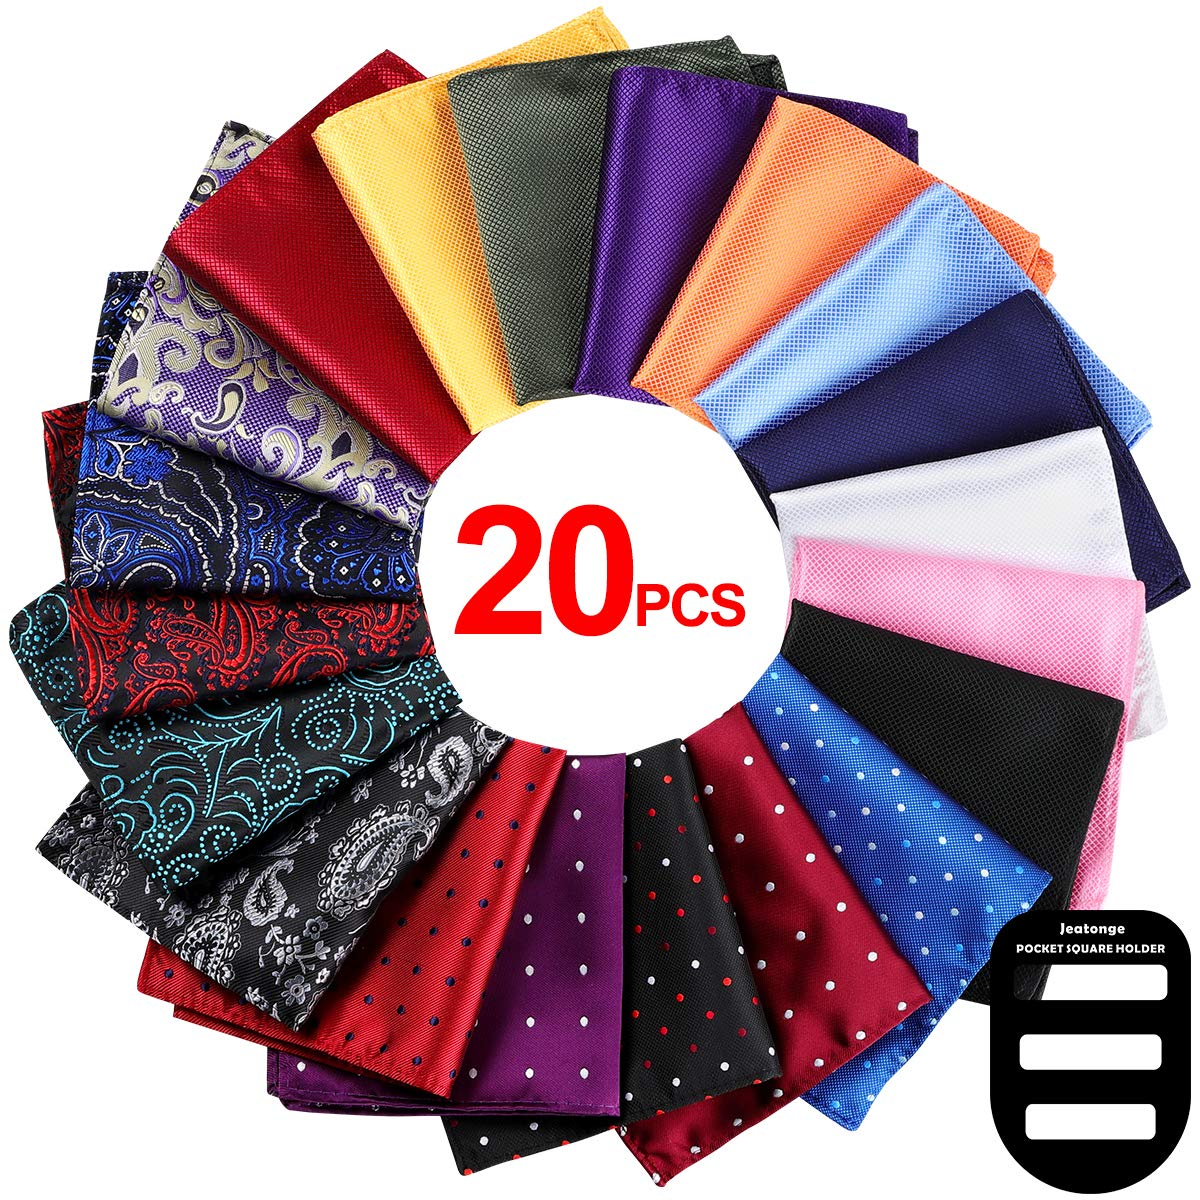 a1c97416bbdb3 Pocket Squares for Men 20 Pack Mens Pocket Squares Sets Assorted Colors  with Gift Box product